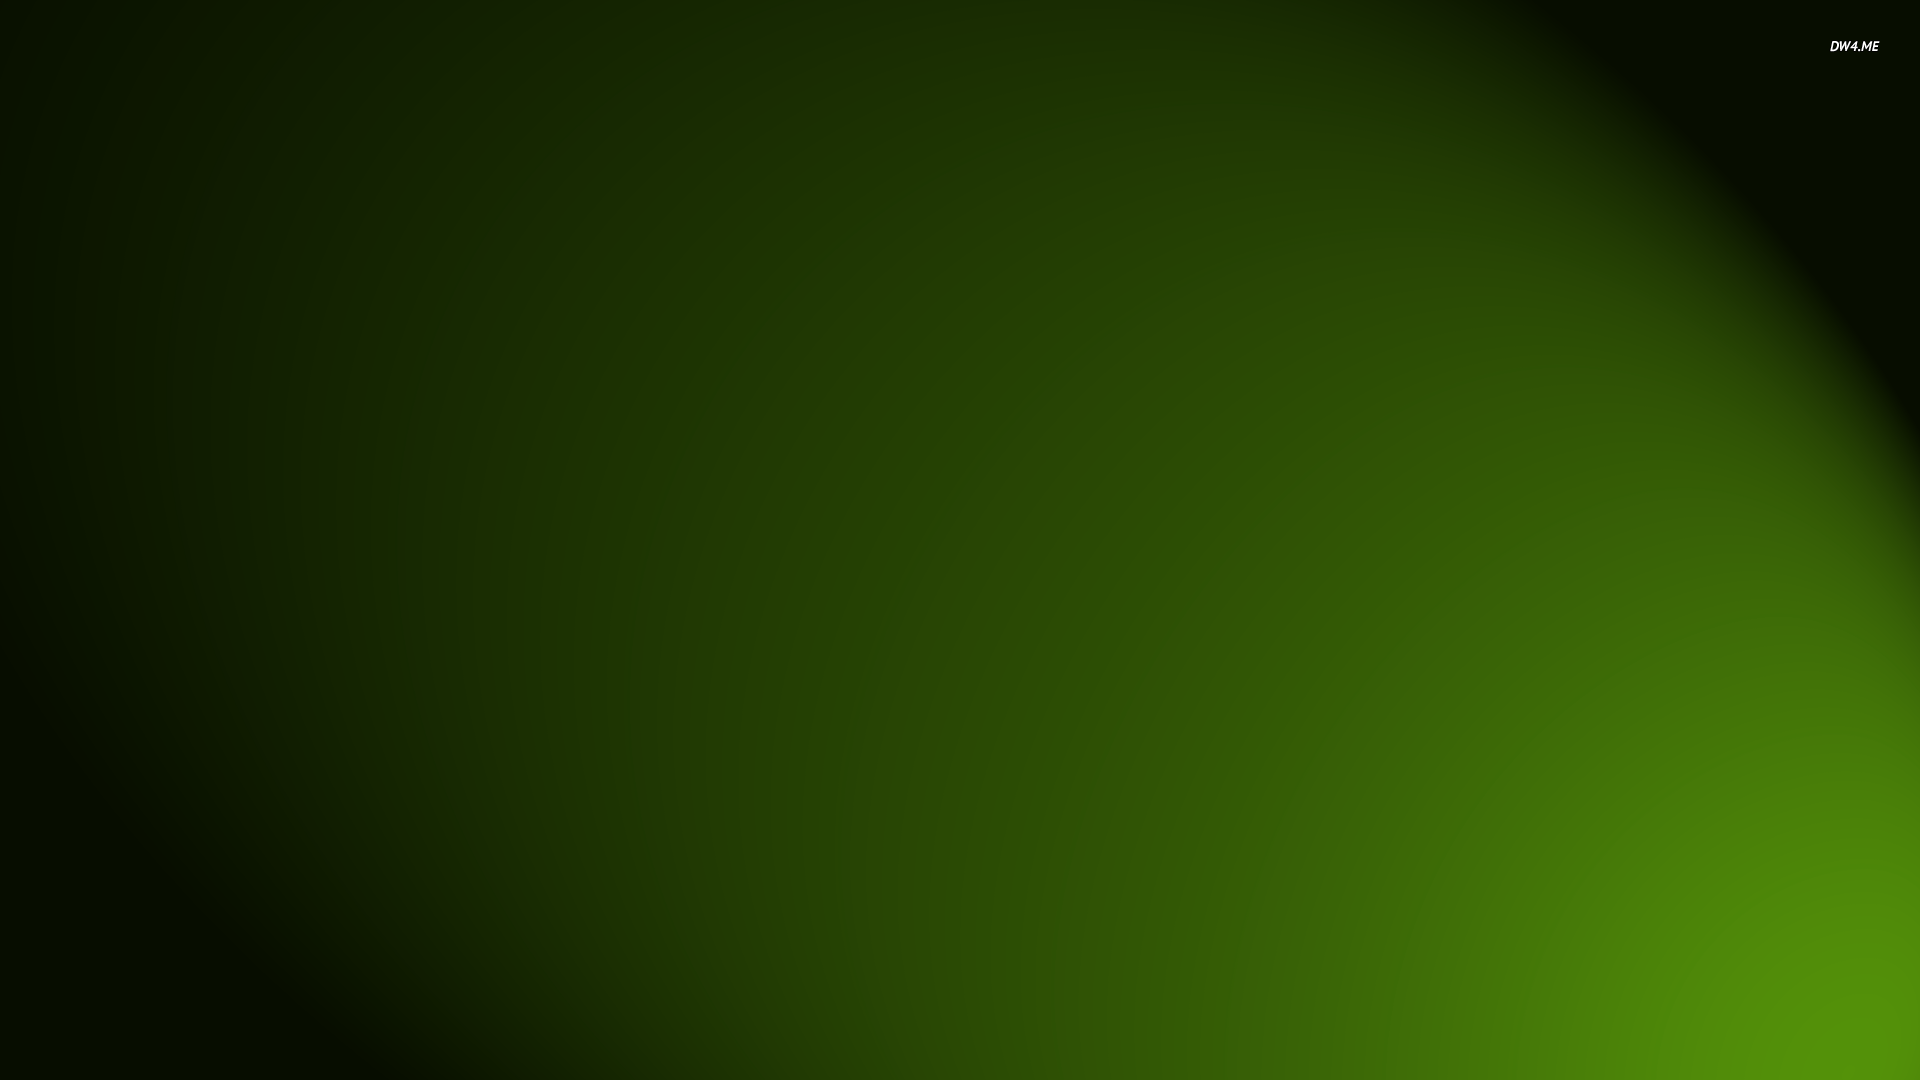 Green Spotlight 342117 - Spotlight PNG HD - Spotlight PNG HD Free